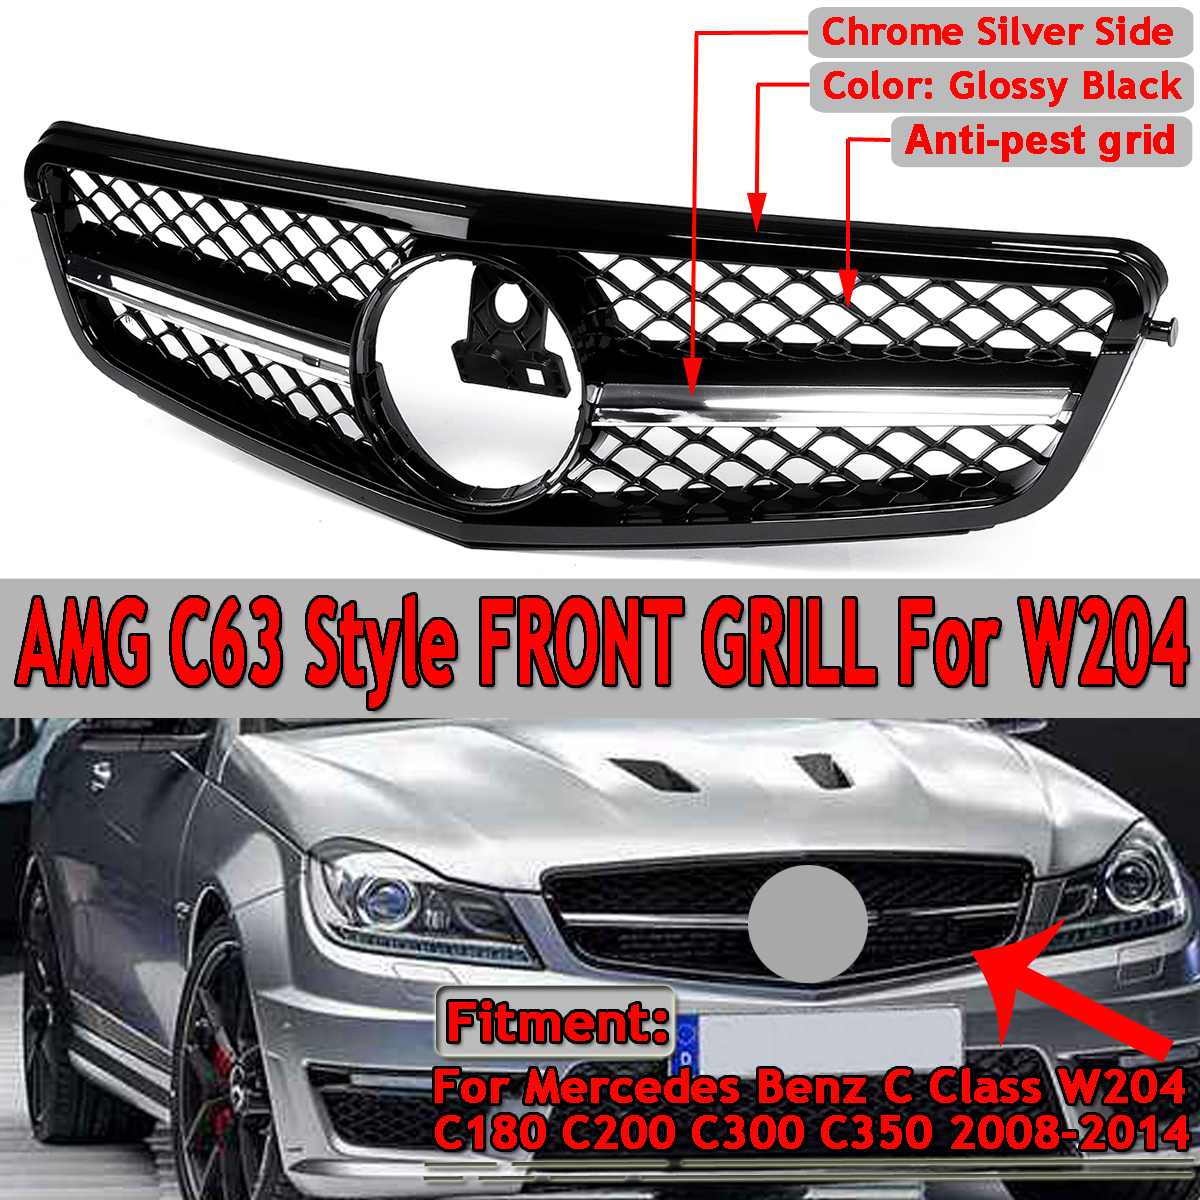 For AMG C63 Style New Car Front Upper Grille Grill For Mercedes For Benz C Class W204 C180 C200 C300 C350 2008 14 Racing Grille